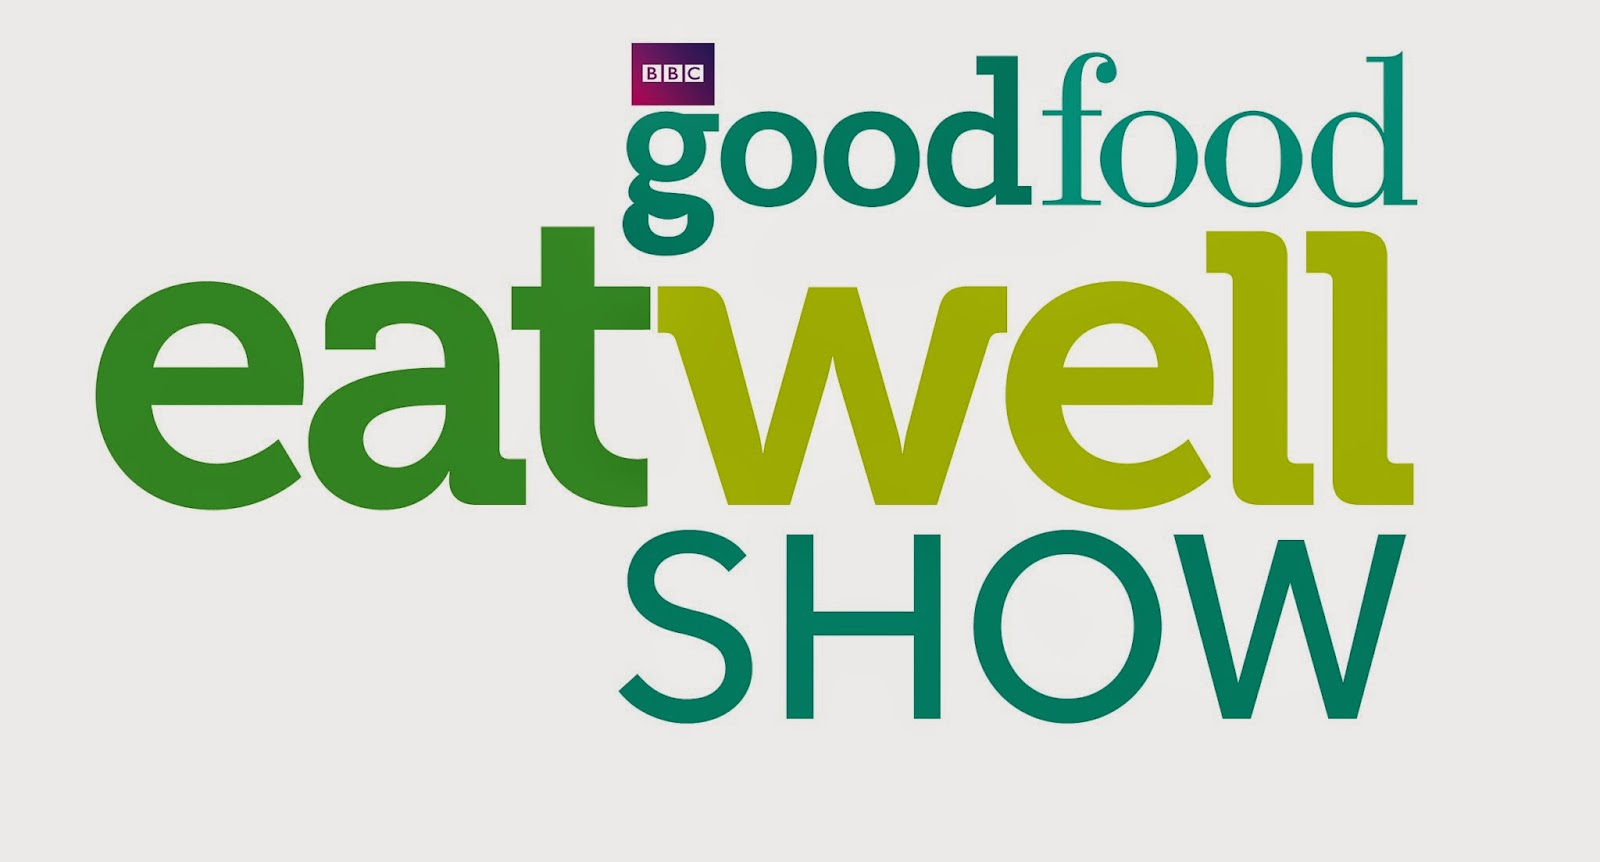 Bbc good food eat well show keep it simpelle the brand new bbc good food eat well show is coming to london on 27 february 1 march 2015 in london olympia its all about learning how to balance a forumfinder Choice Image